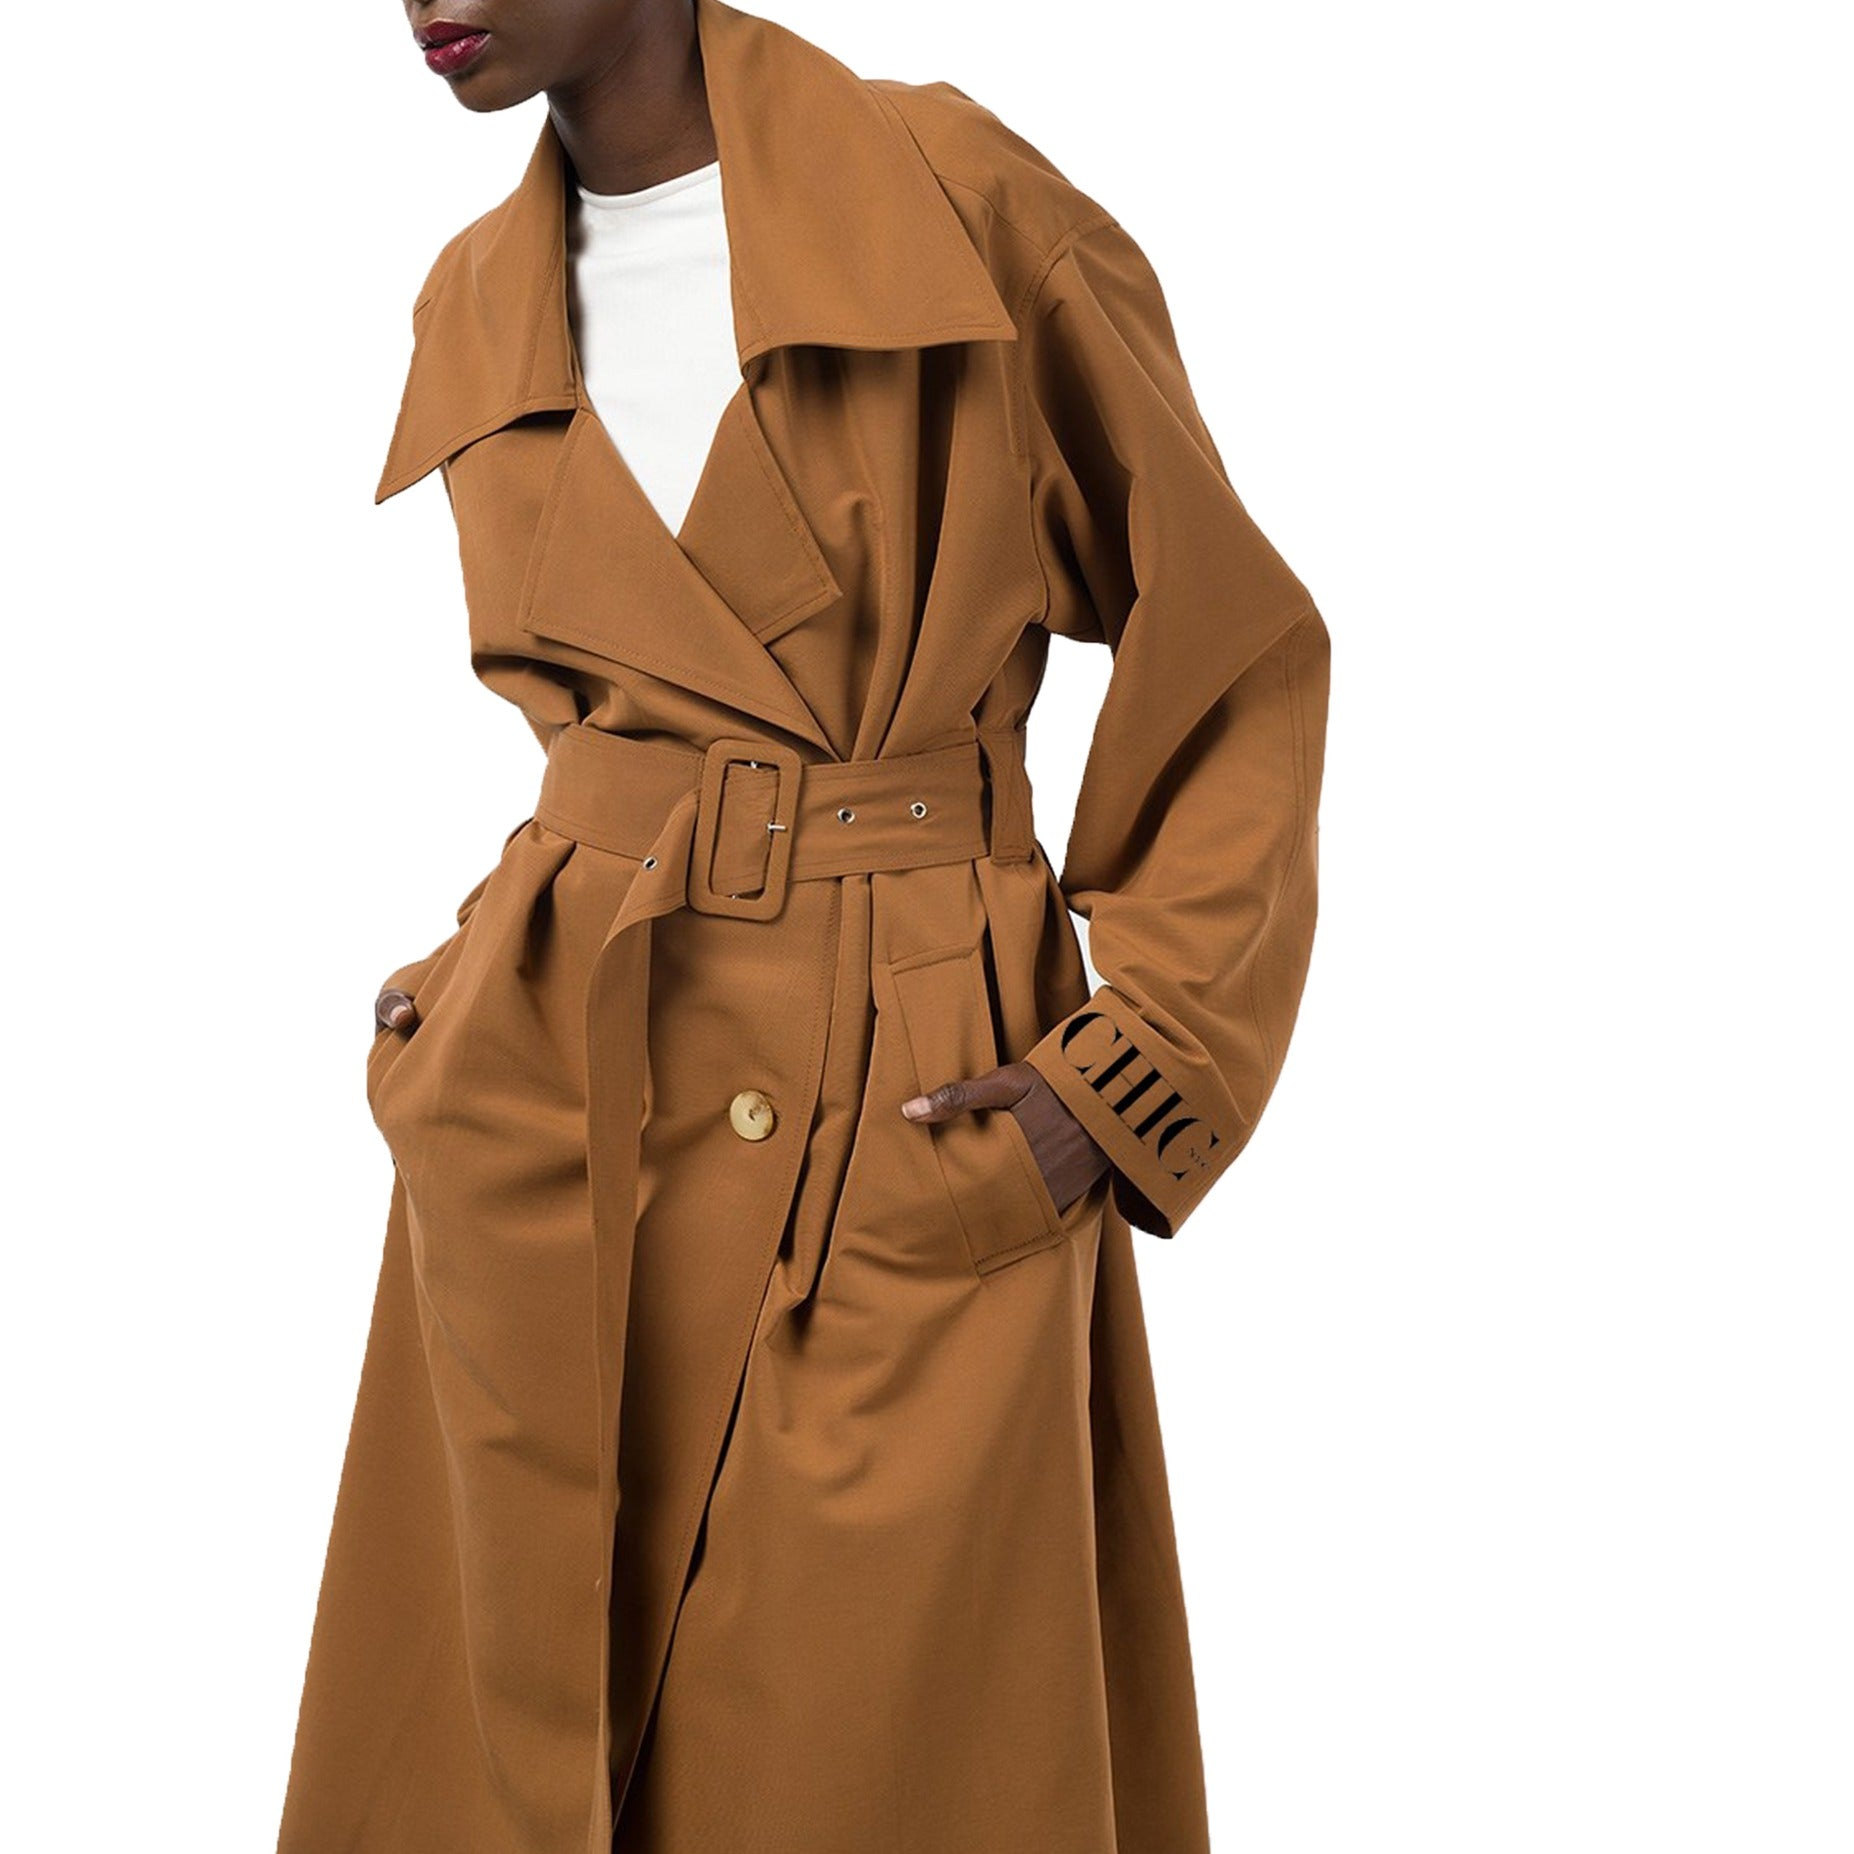 Chic NYC Trench coat